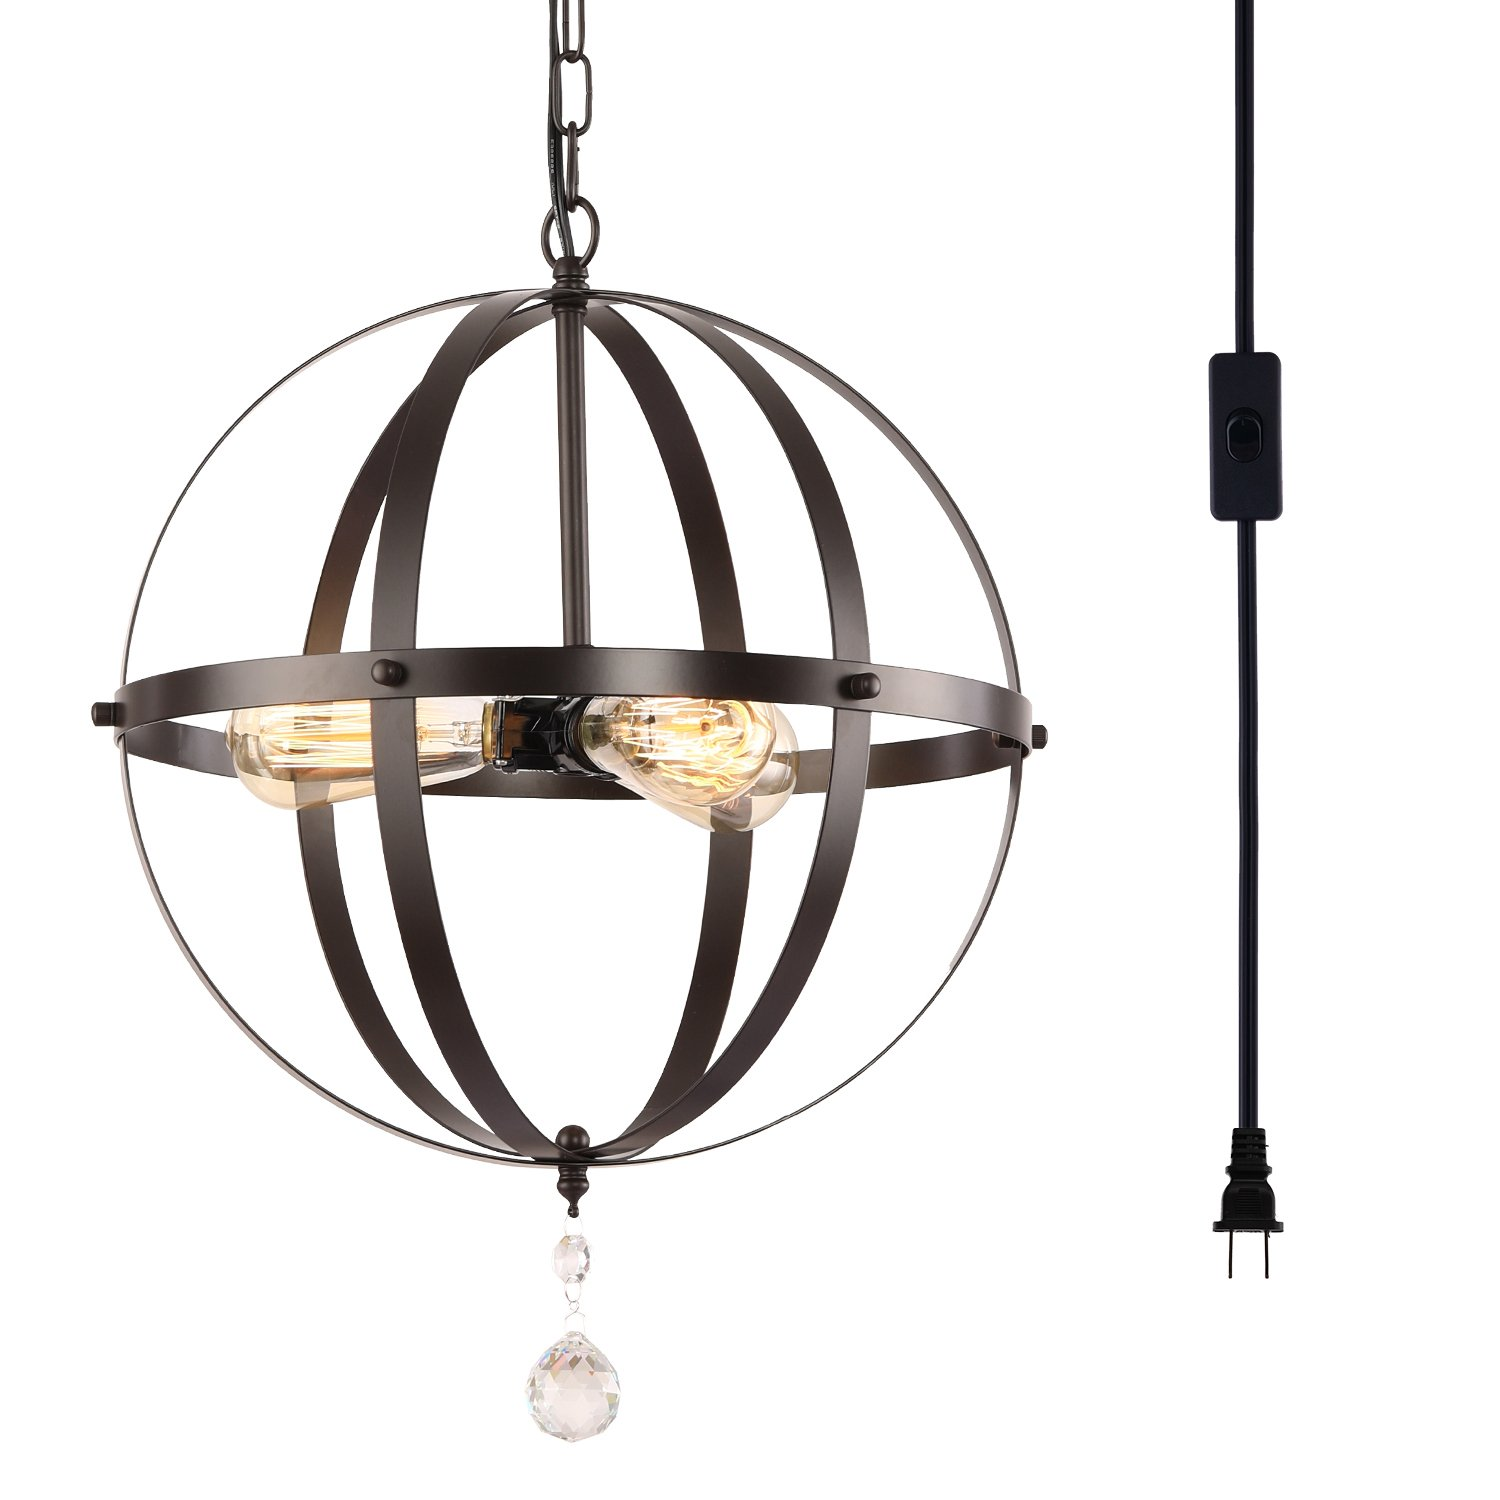 HMVPL Plug-in Industrial 3 Light Globe Pendant with 16.4 Ft Hanging Cord and Toggle Switch, Oil Rubbed Bronze Finish, Vintage Metal Chandelier Ceiling Light Fixture by HMVPL